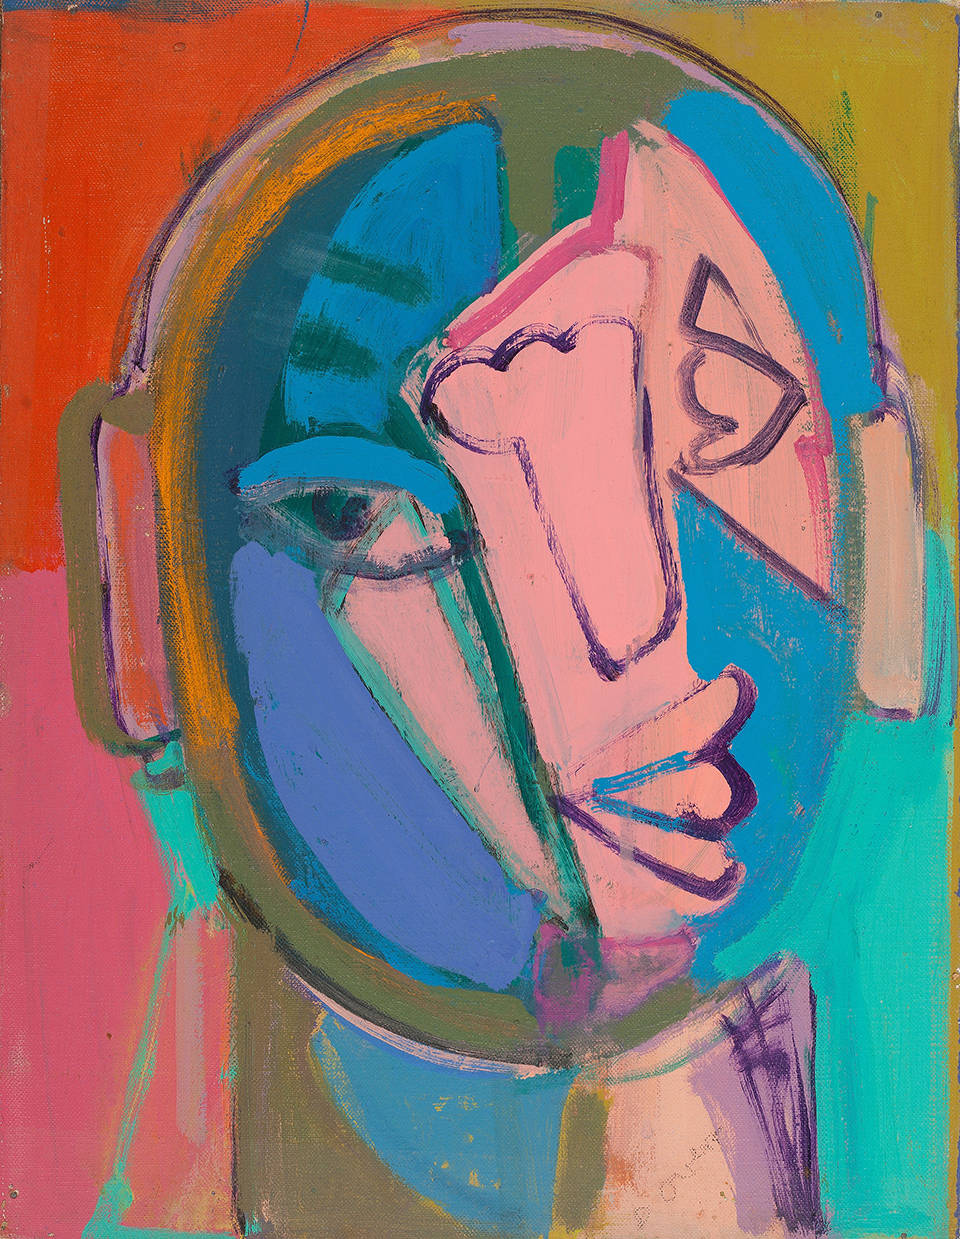 Susan Tepper, Untitled (from the Heads Series), c.1978-1983. Acrylic, Conté crayon and collage on Masonite 16 x 12 inches (40.6 x 30.5 cm)